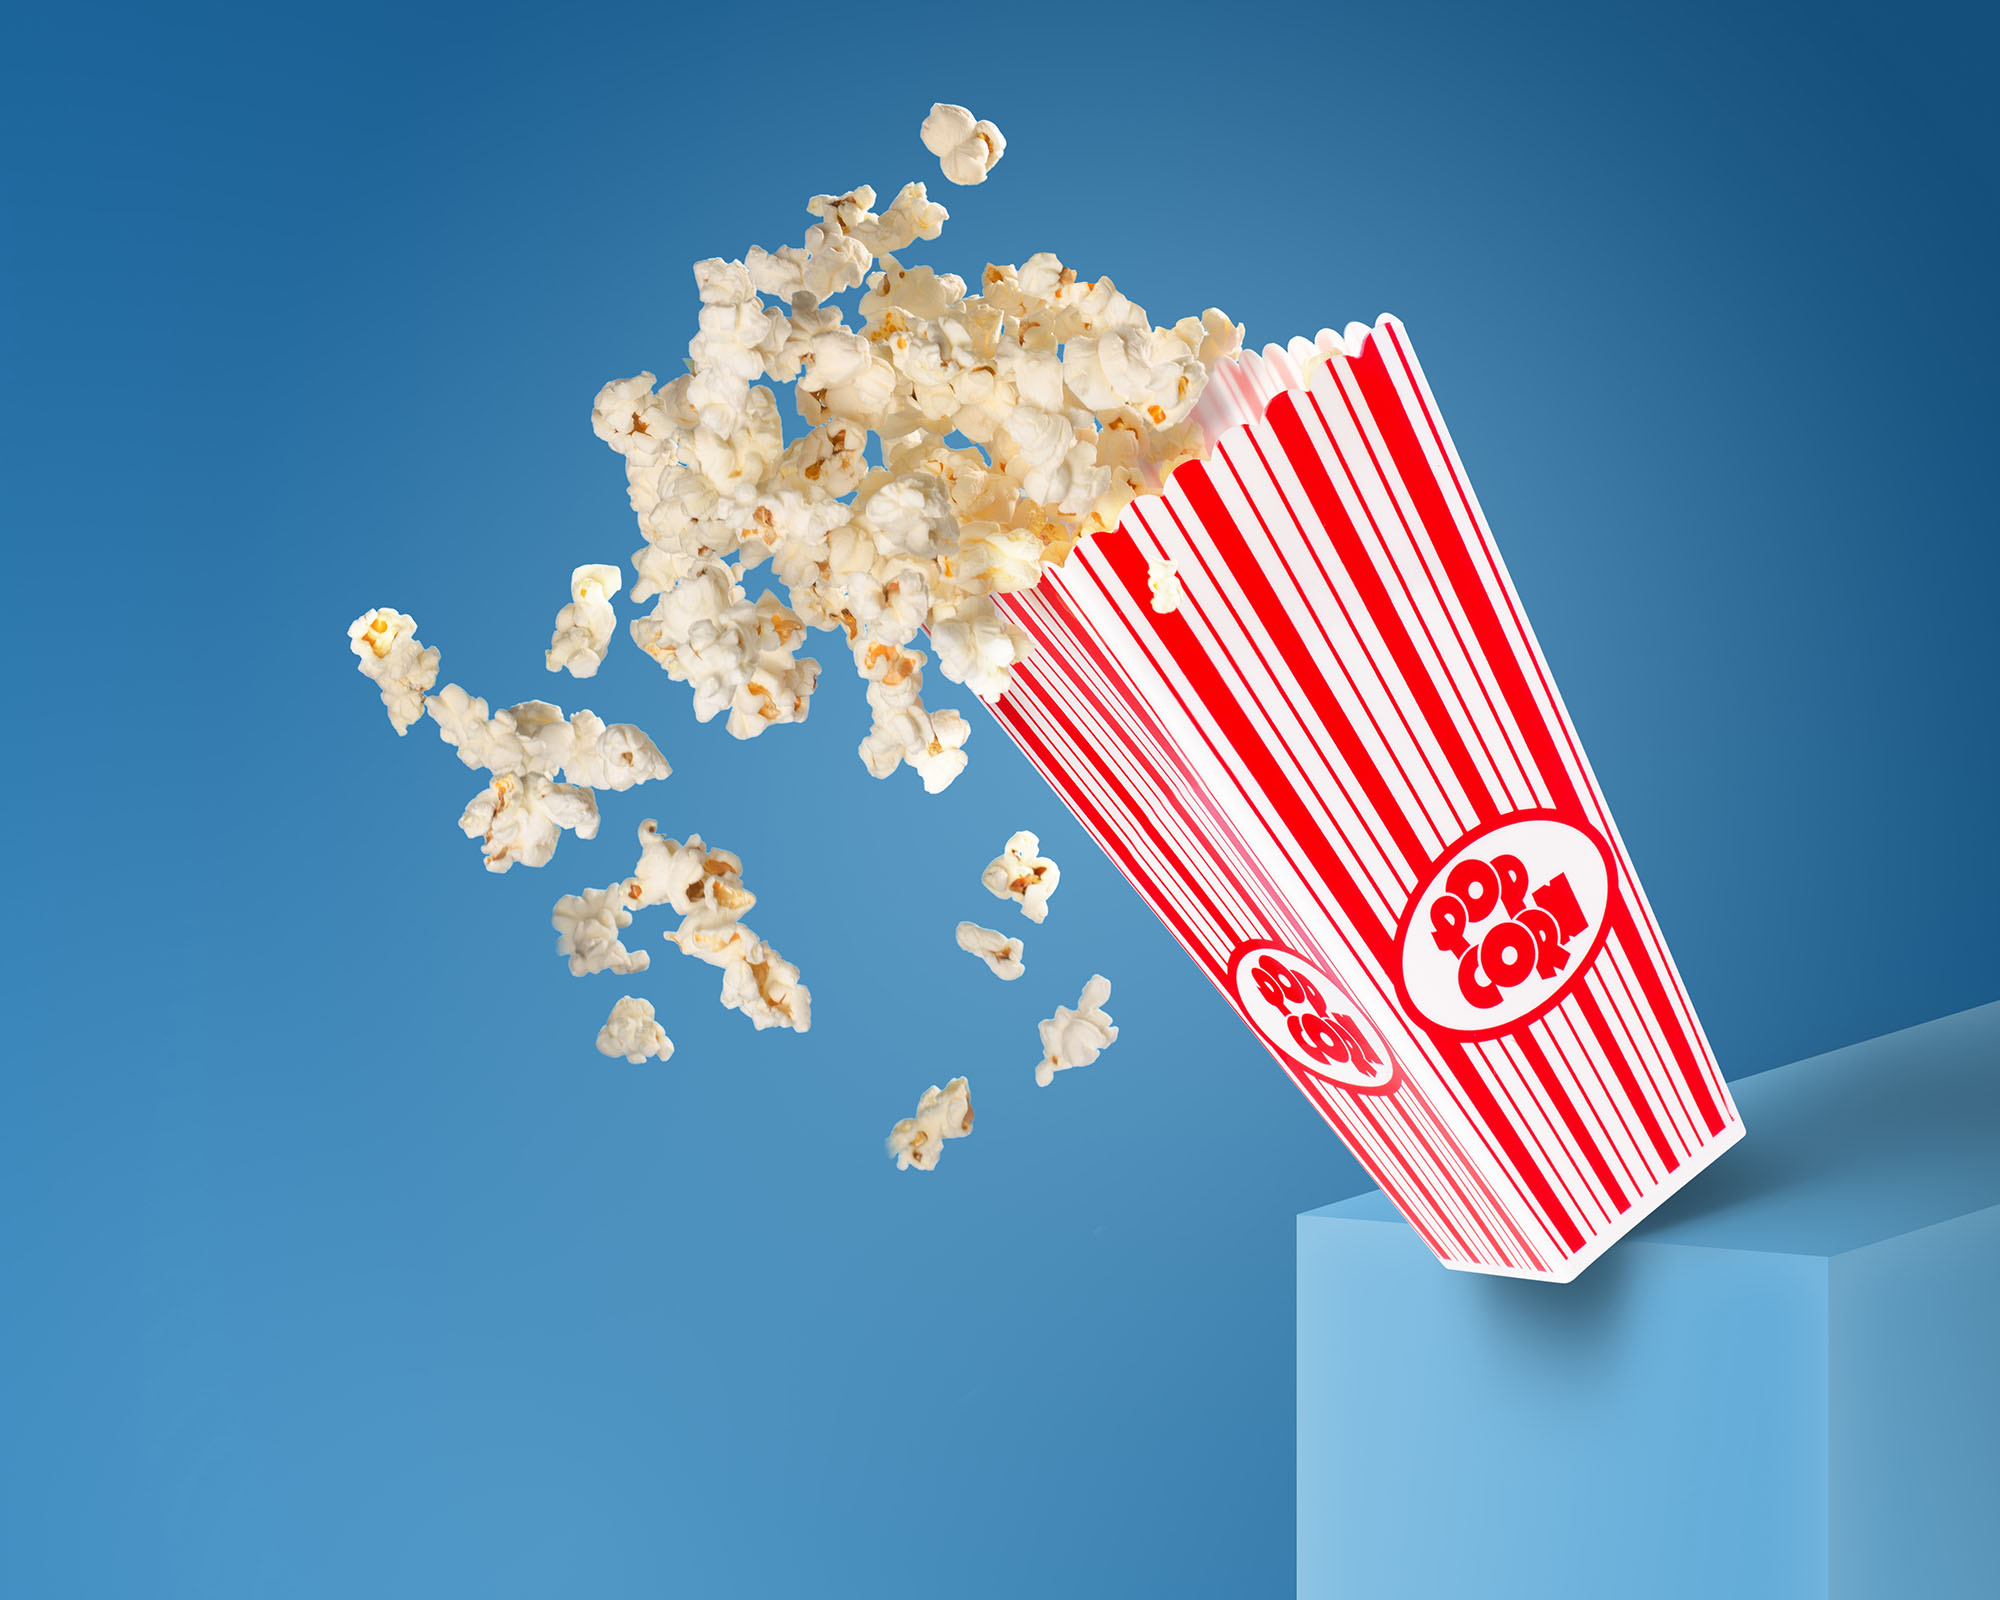 Ian Knaggs Commercial Still Life Photographer - Popcorn